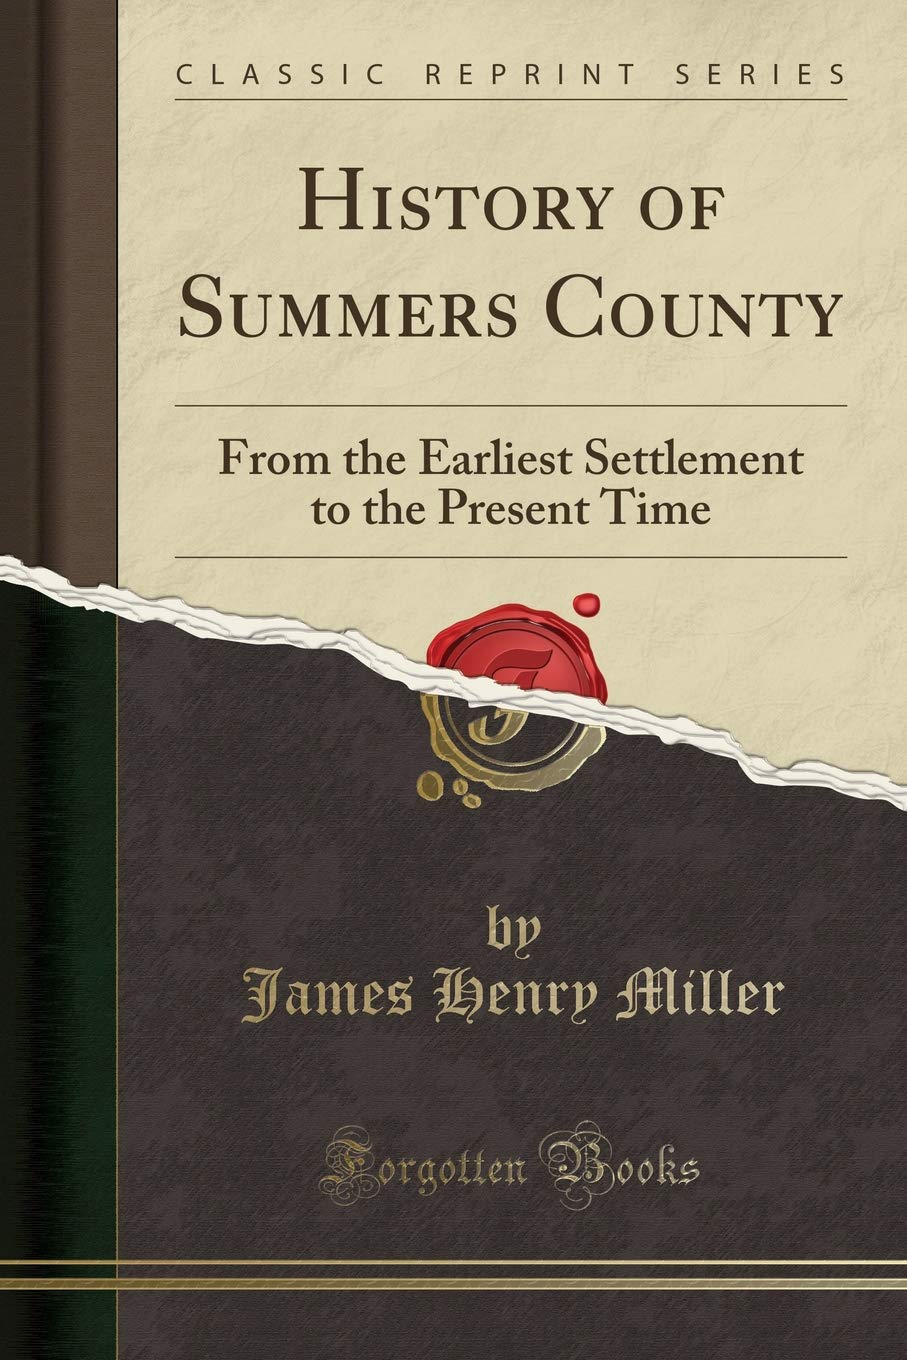 Download History of Summers County: From the Earliest Settlement to the Present Time (Classic Reprint) ebook